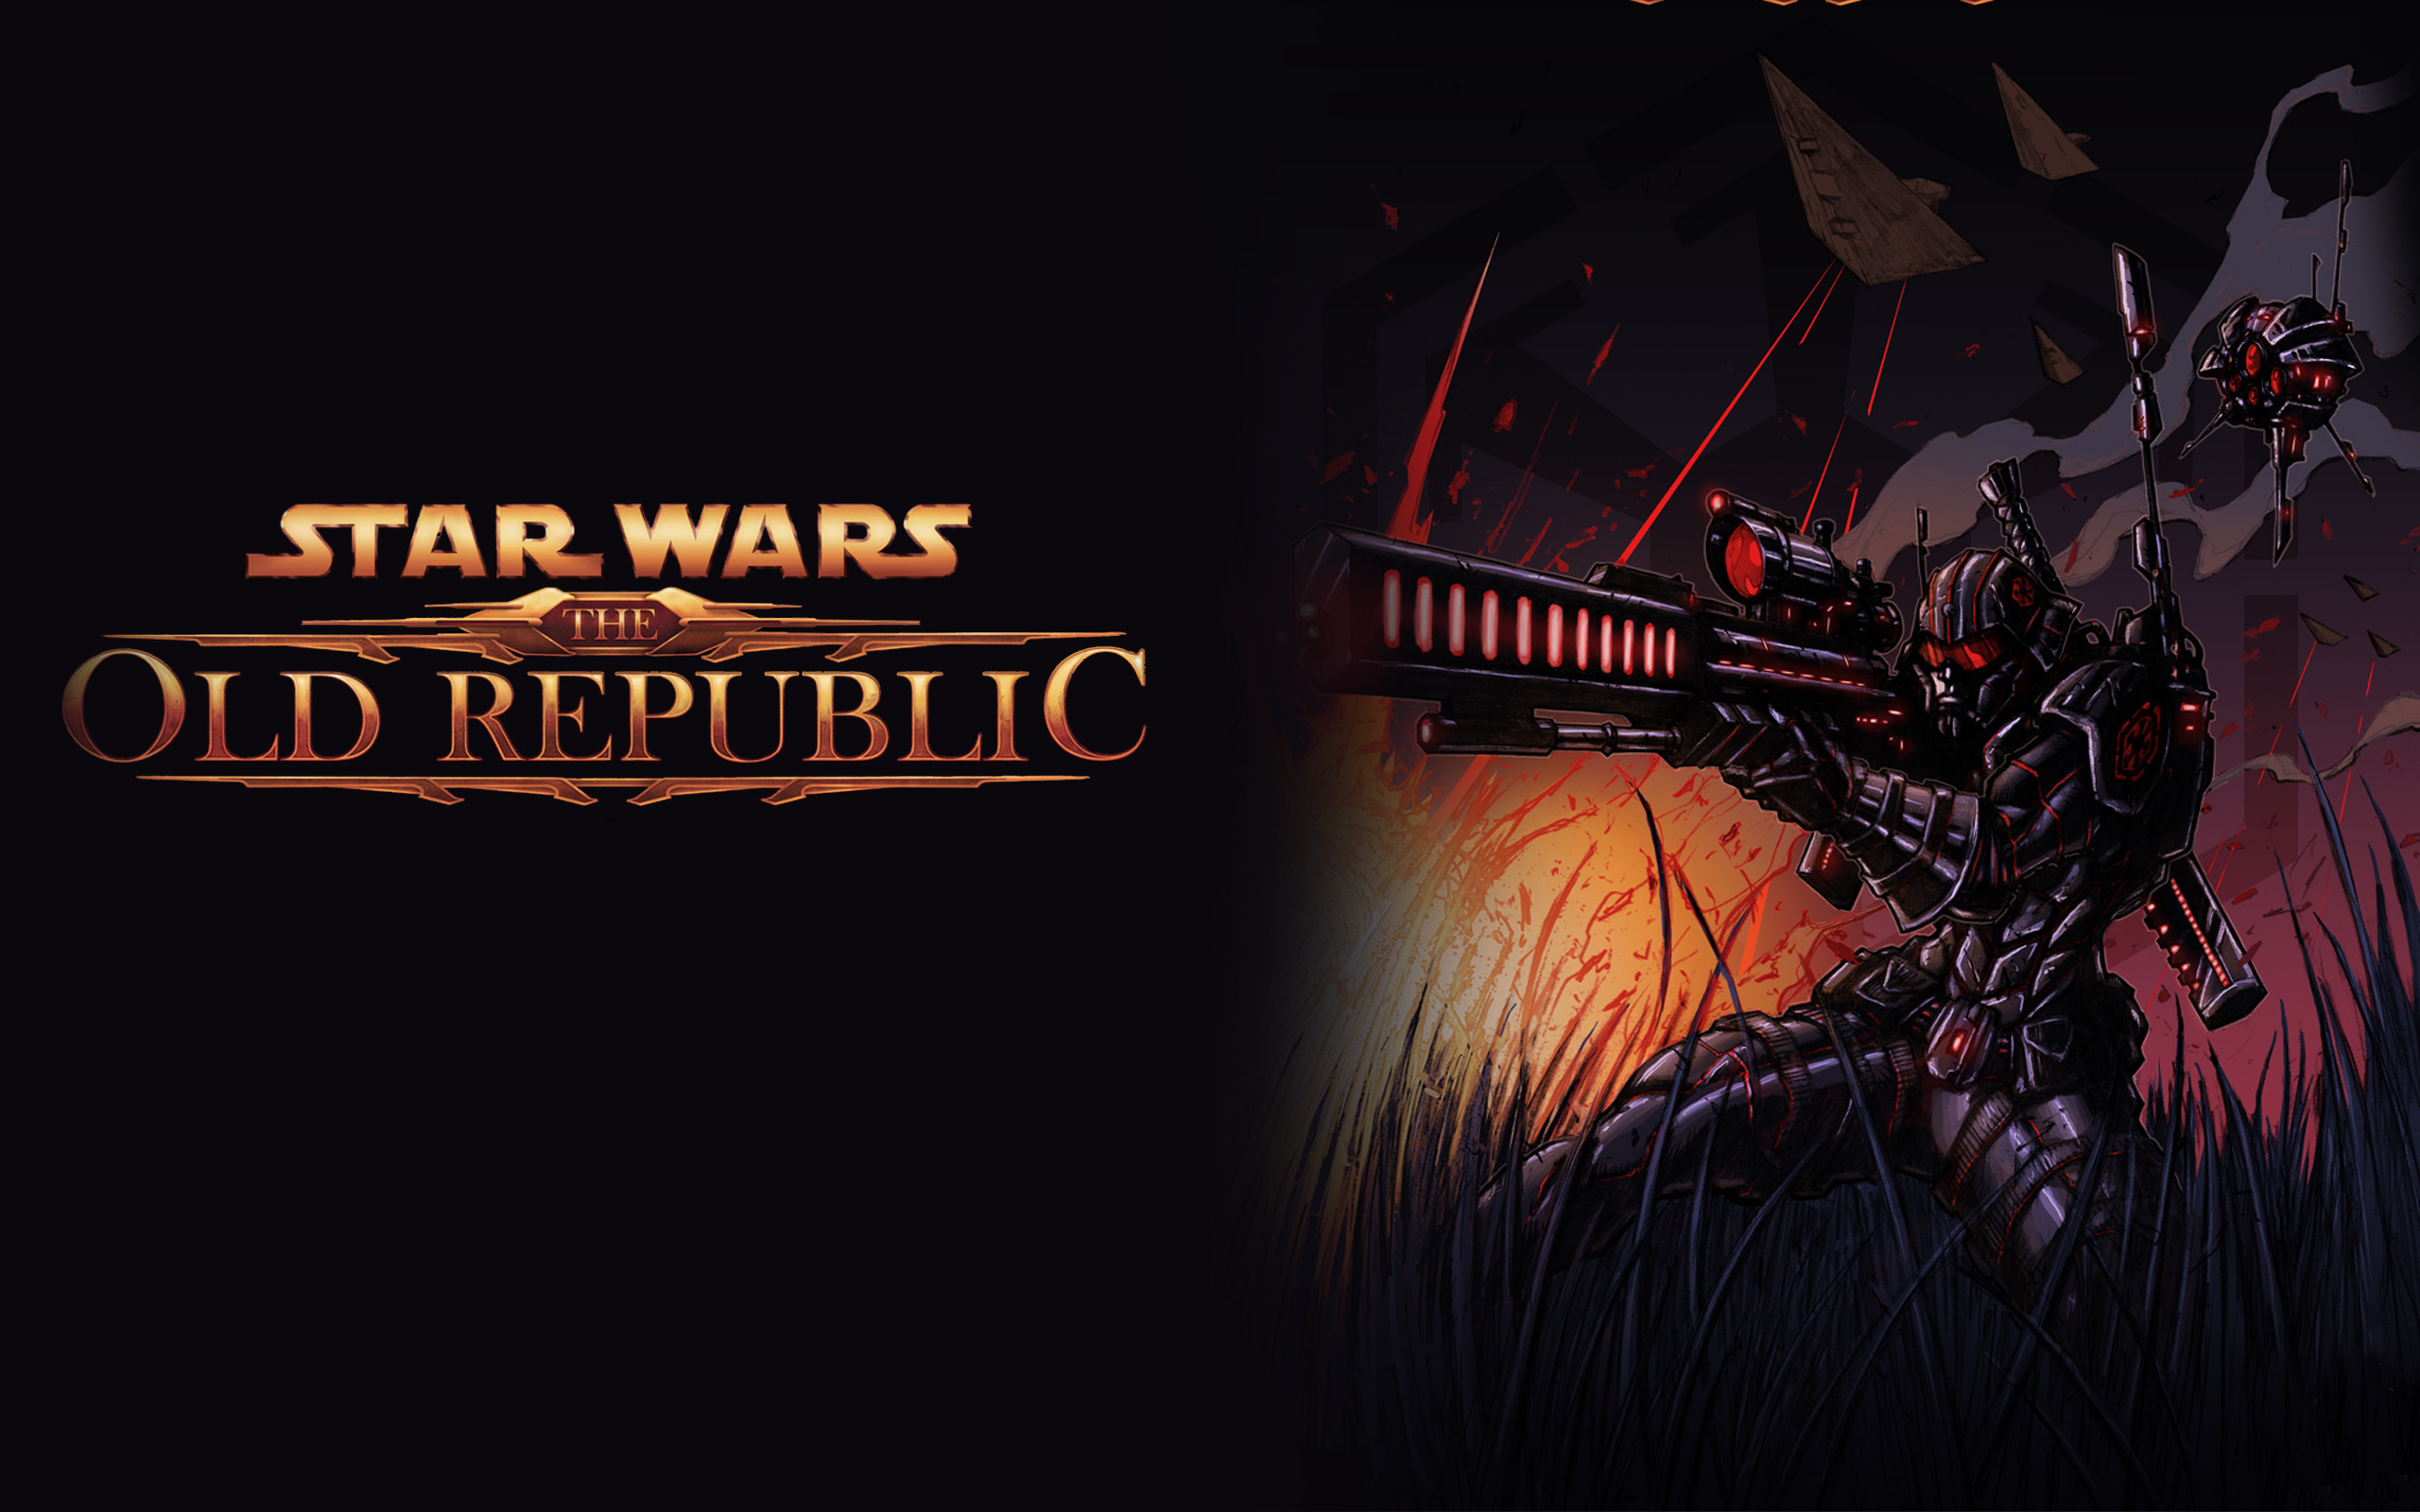 Star Wars The Old Republic Wallpapers Pictures Images 2560x1600